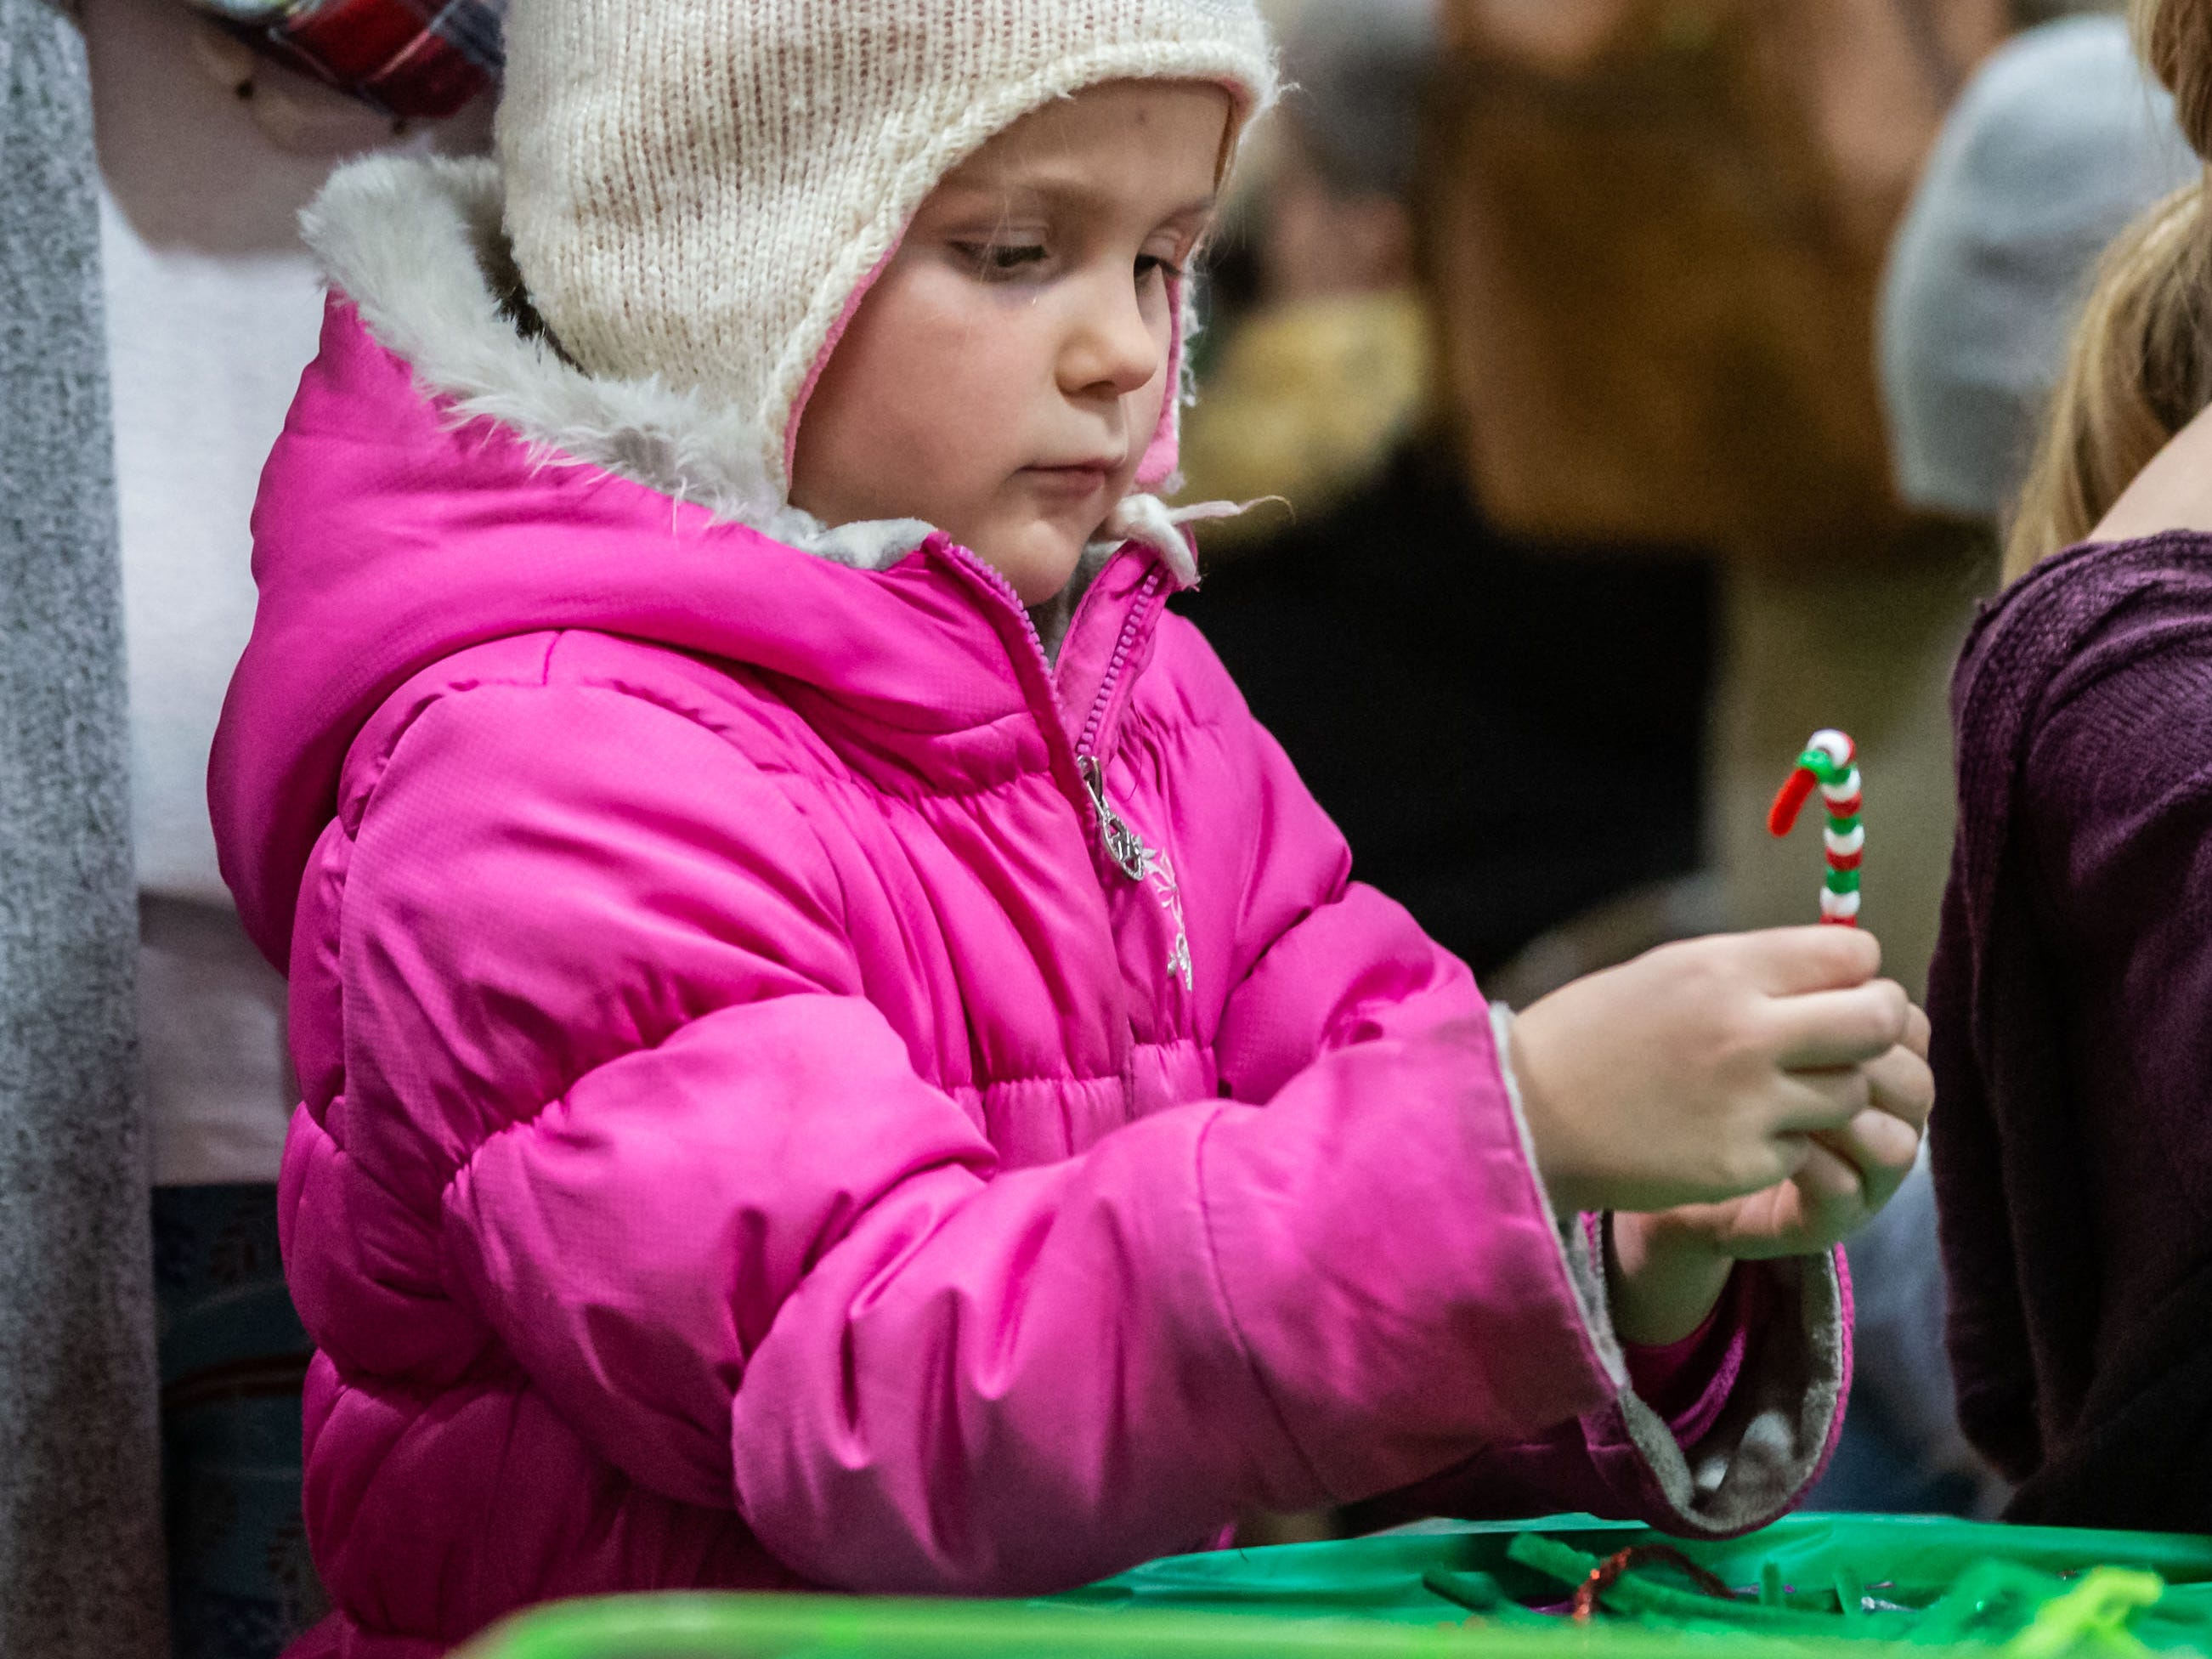 Taelyr Dainsberg, 6, of Grafton, makes an ornament during Cedarburg's annual tree lighting ceremony at the Community Center on Monday, Nov. 26, 2018. The event, hosted by Cedarburg Chamber of Commerce, features make-and-take crafts, cookies, cider, music, caroling and a visit from Santa to light the tree.